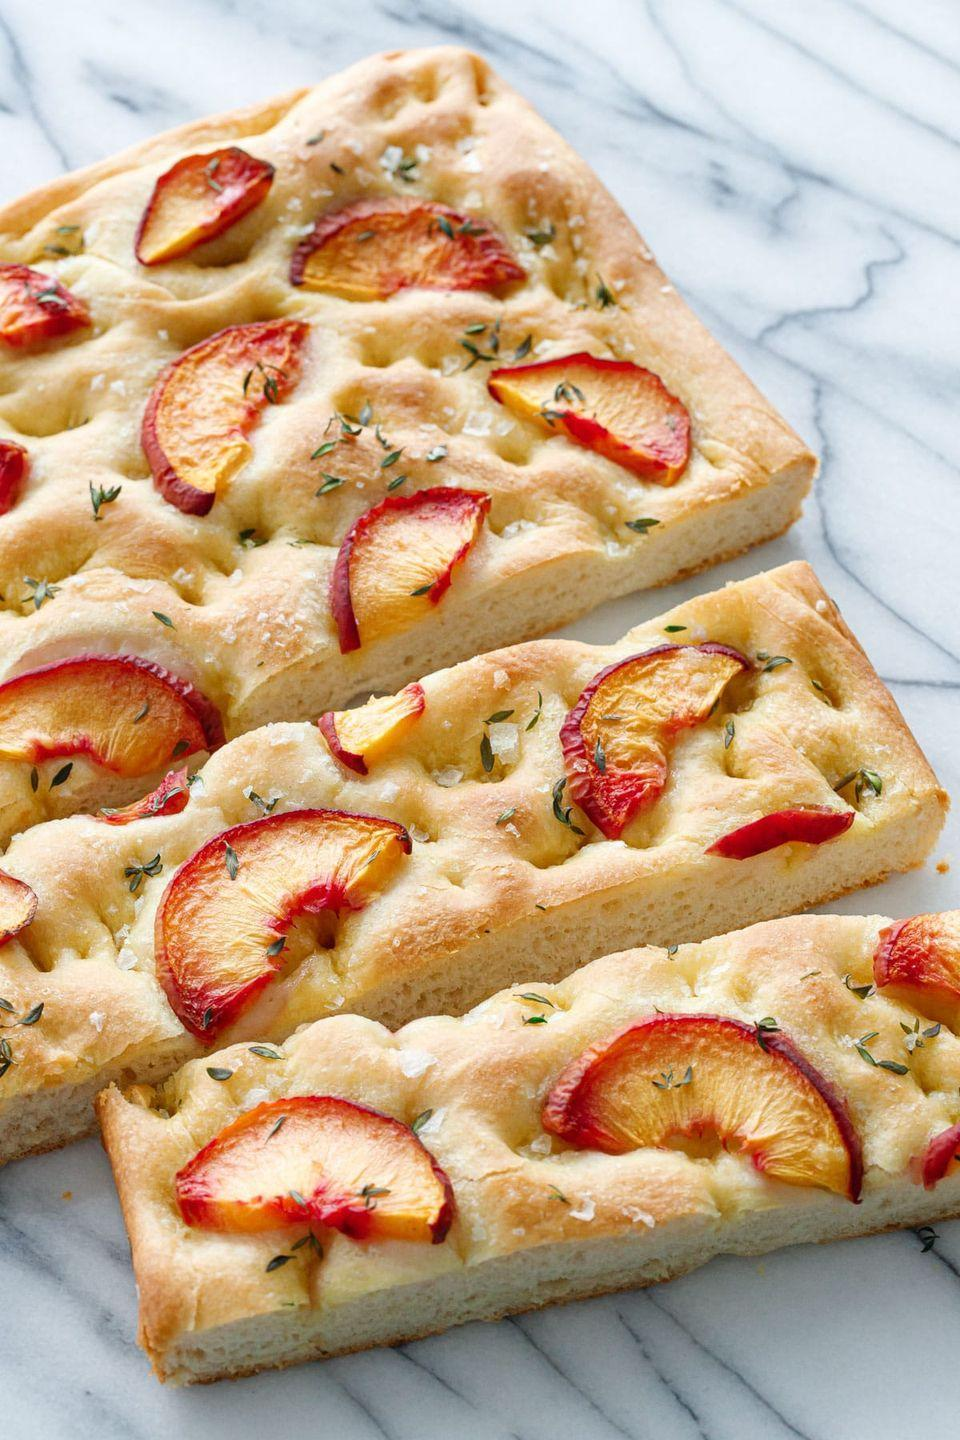 """<p>This bread, topped with thin slices of peaches, a sprinkling of herbs, and chunky sea salt, looks like something you'd find at a five-star restaurant, but is surprisingly easy to make. </p><p><a href=""""https://www.loveandoliveoil.com/2019/08/peach-focaccia-bread.html"""" rel=""""nofollow noopener"""" target=""""_blank"""" data-ylk=""""slk:Get the recipe."""" class=""""link rapid-noclick-resp"""">Get the recipe. </a></p>"""